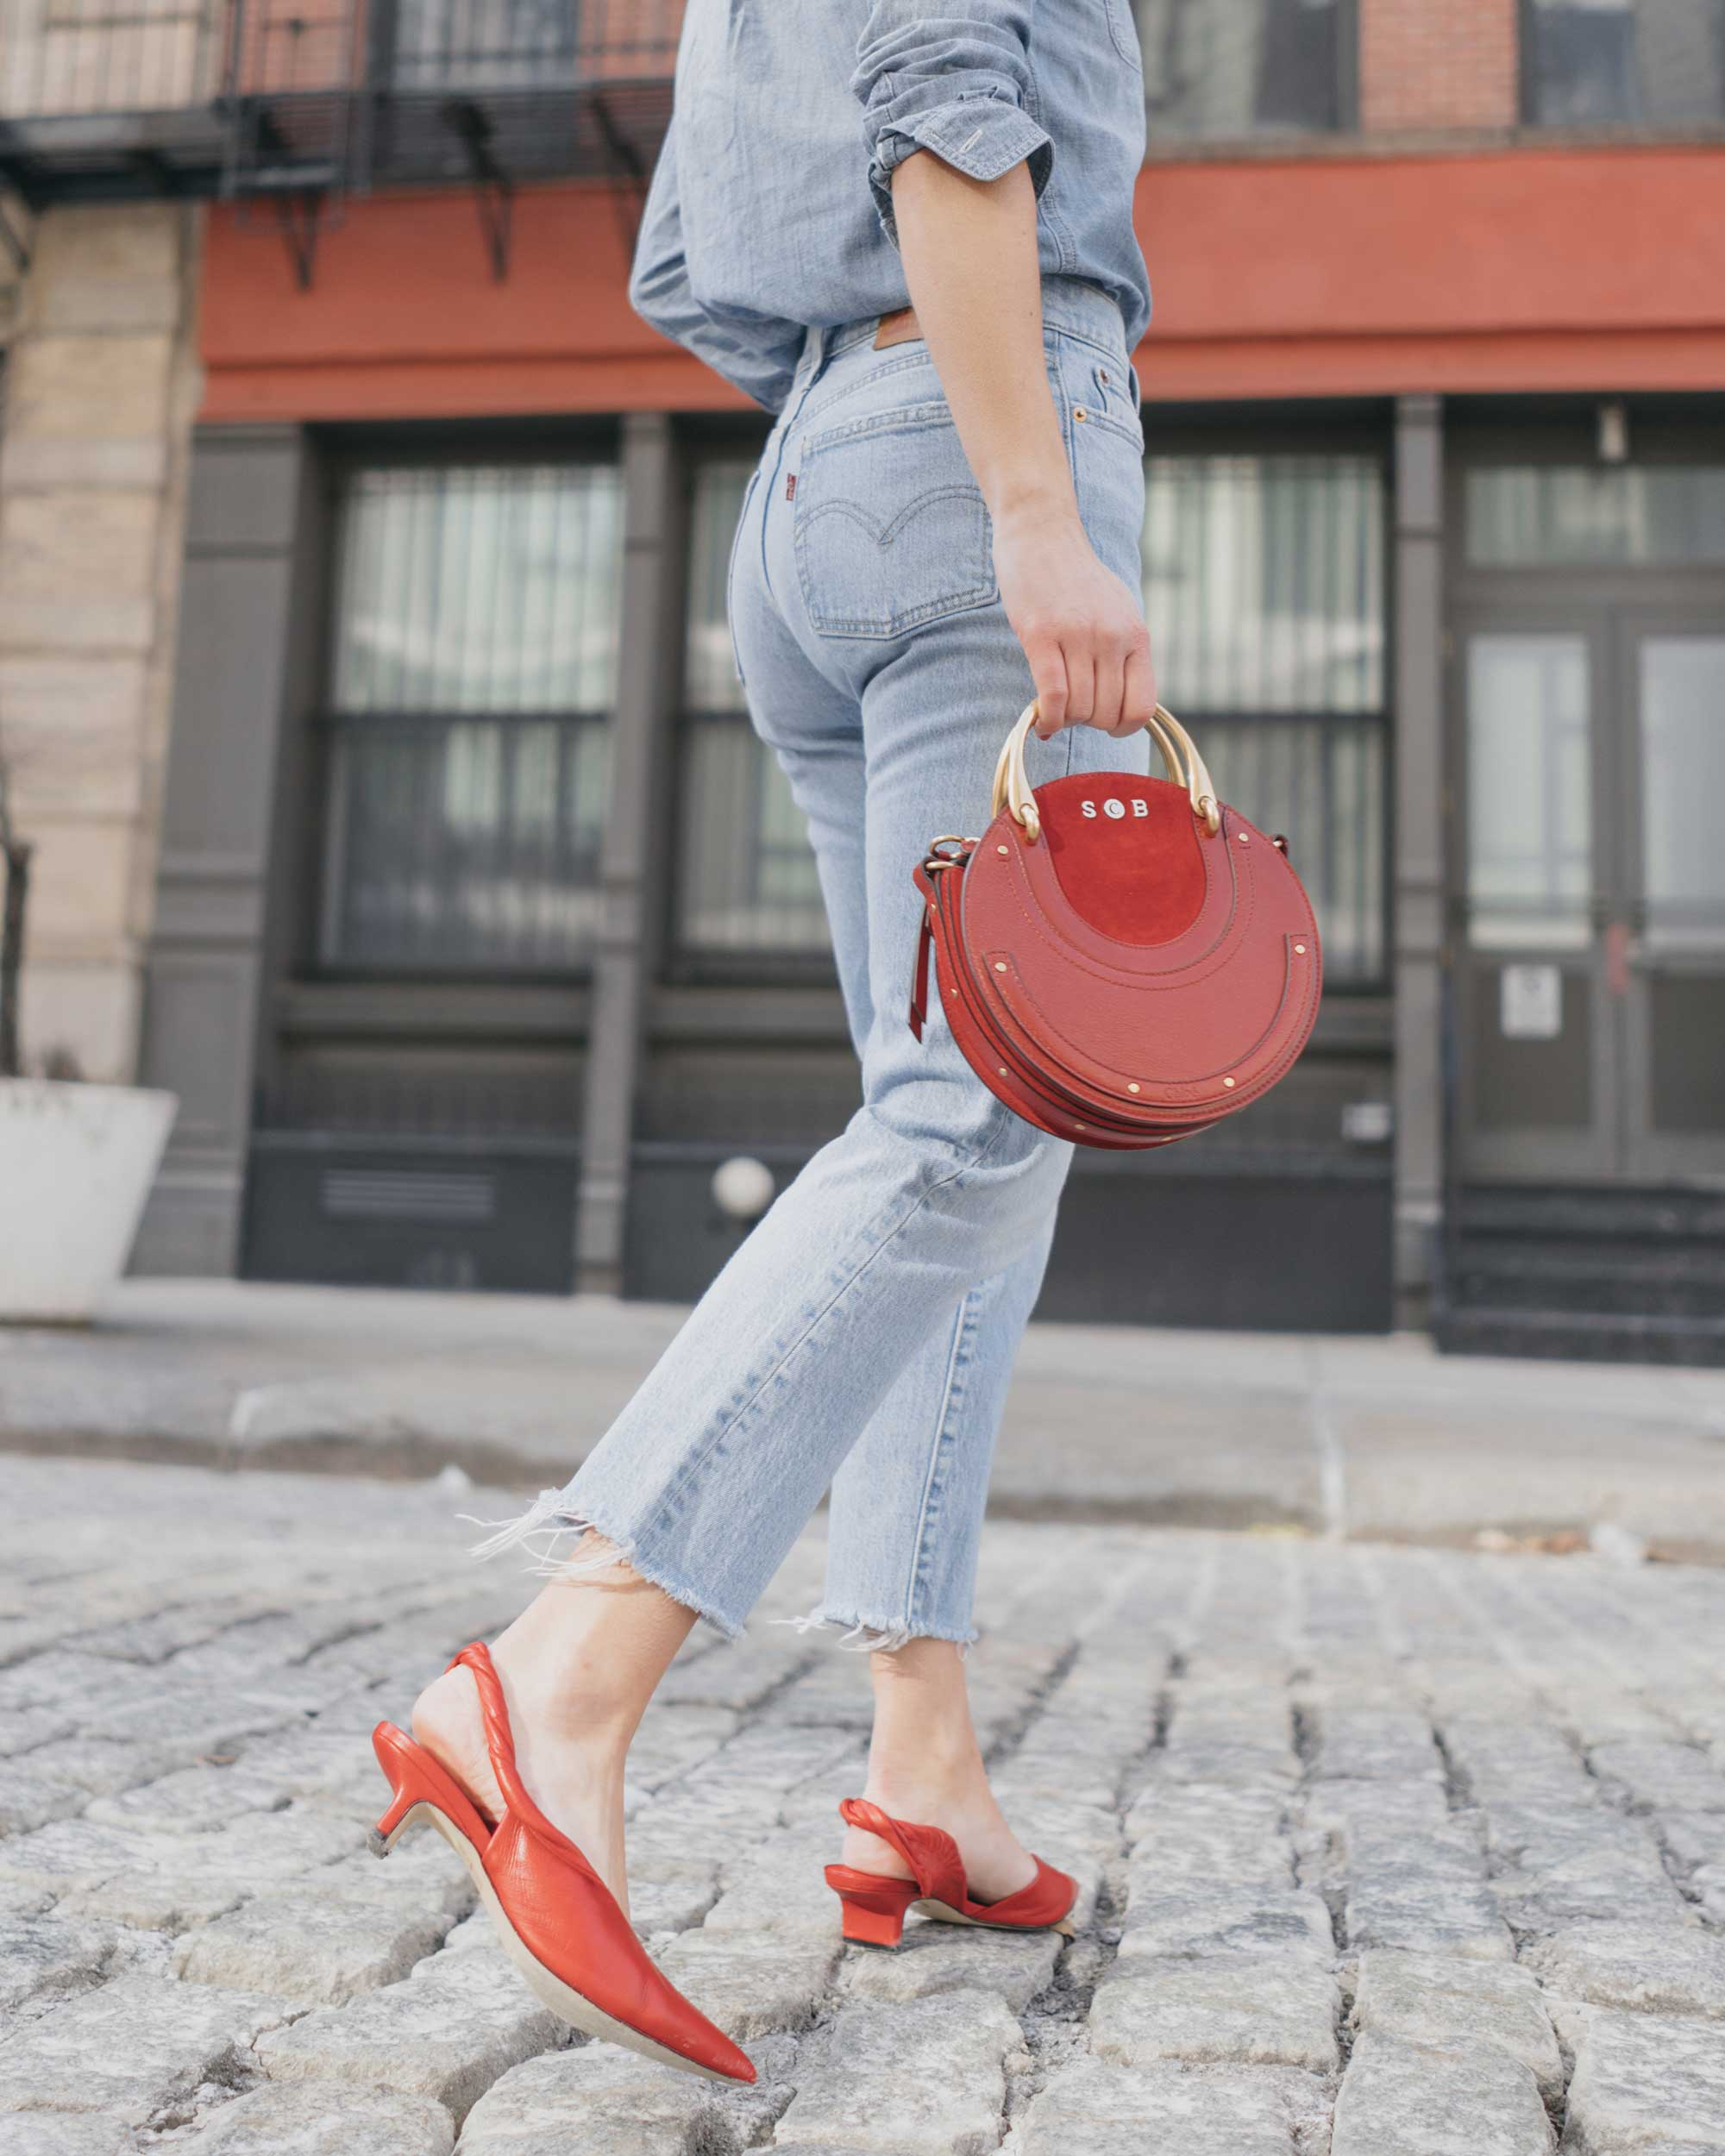 Madewell-Chambray-Boyfriend-Shirt--Levi's-Wedgie-High-Rise-Straight-Jeans-Chloe-Pixie-Leather-Crossbody-Bag-Sigerson-Morrison-Red-Slingback-Pump-7.jpg